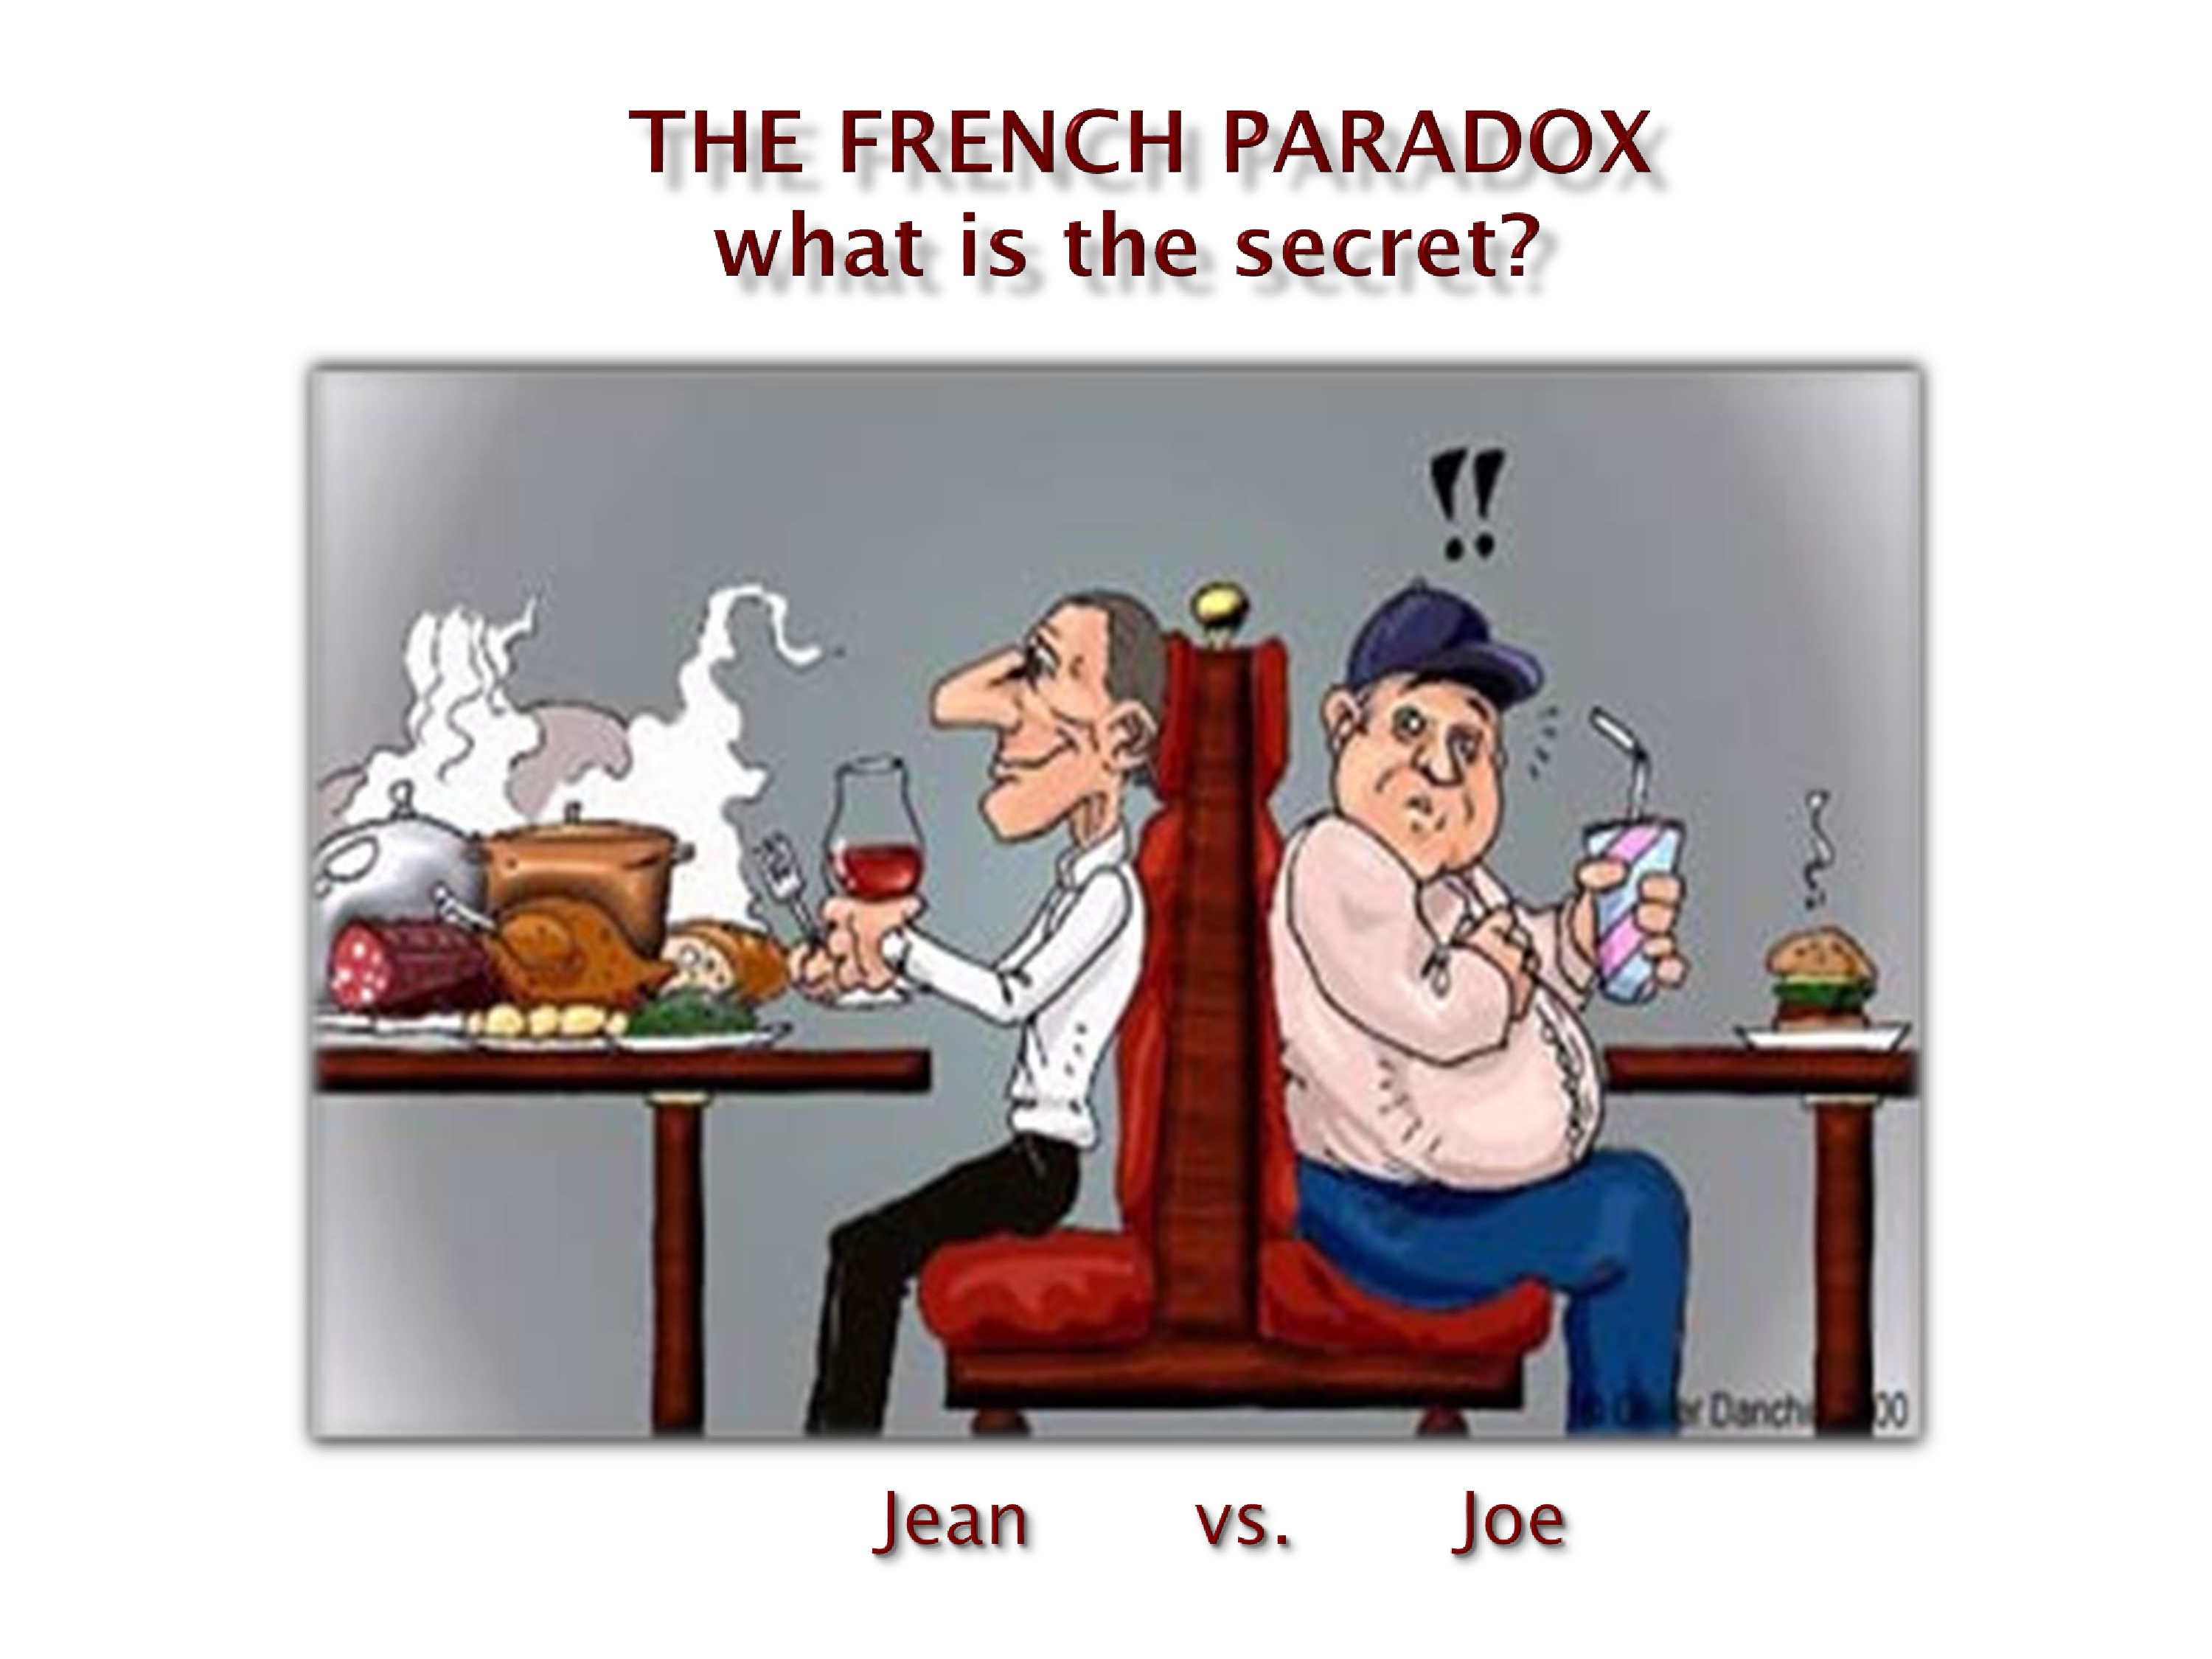 some paradoxical issues in neuromanagement of A scientific study found that paradoxical thinking changed some israelis' beliefs about the conflict the real problems are not the real issues.